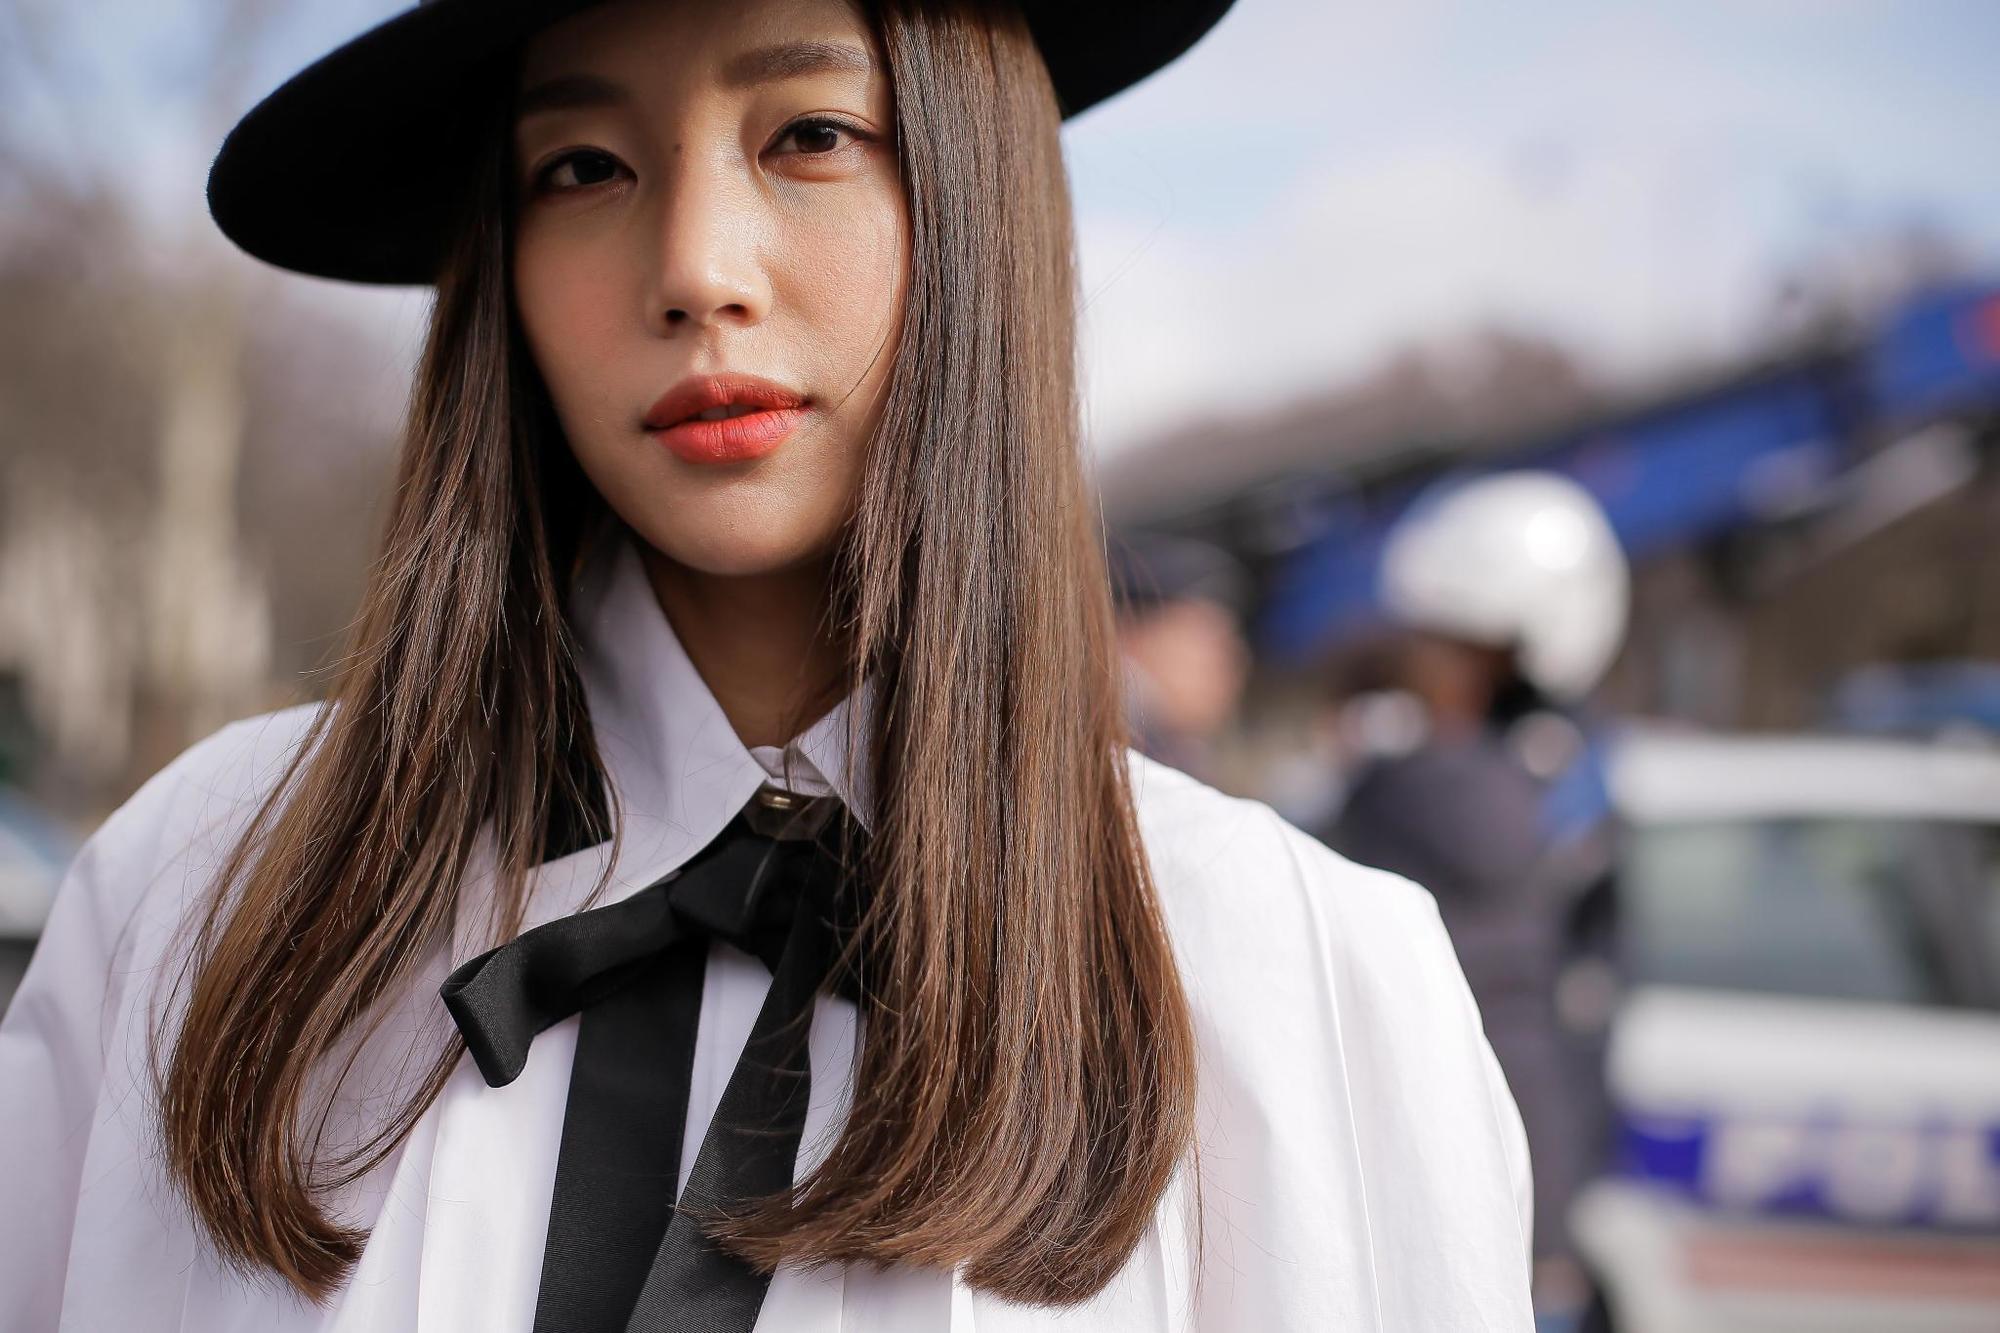 f4c4b0d621101 Wide Brim Hat Hairstyles  The Trend You Didn t Know You Loved